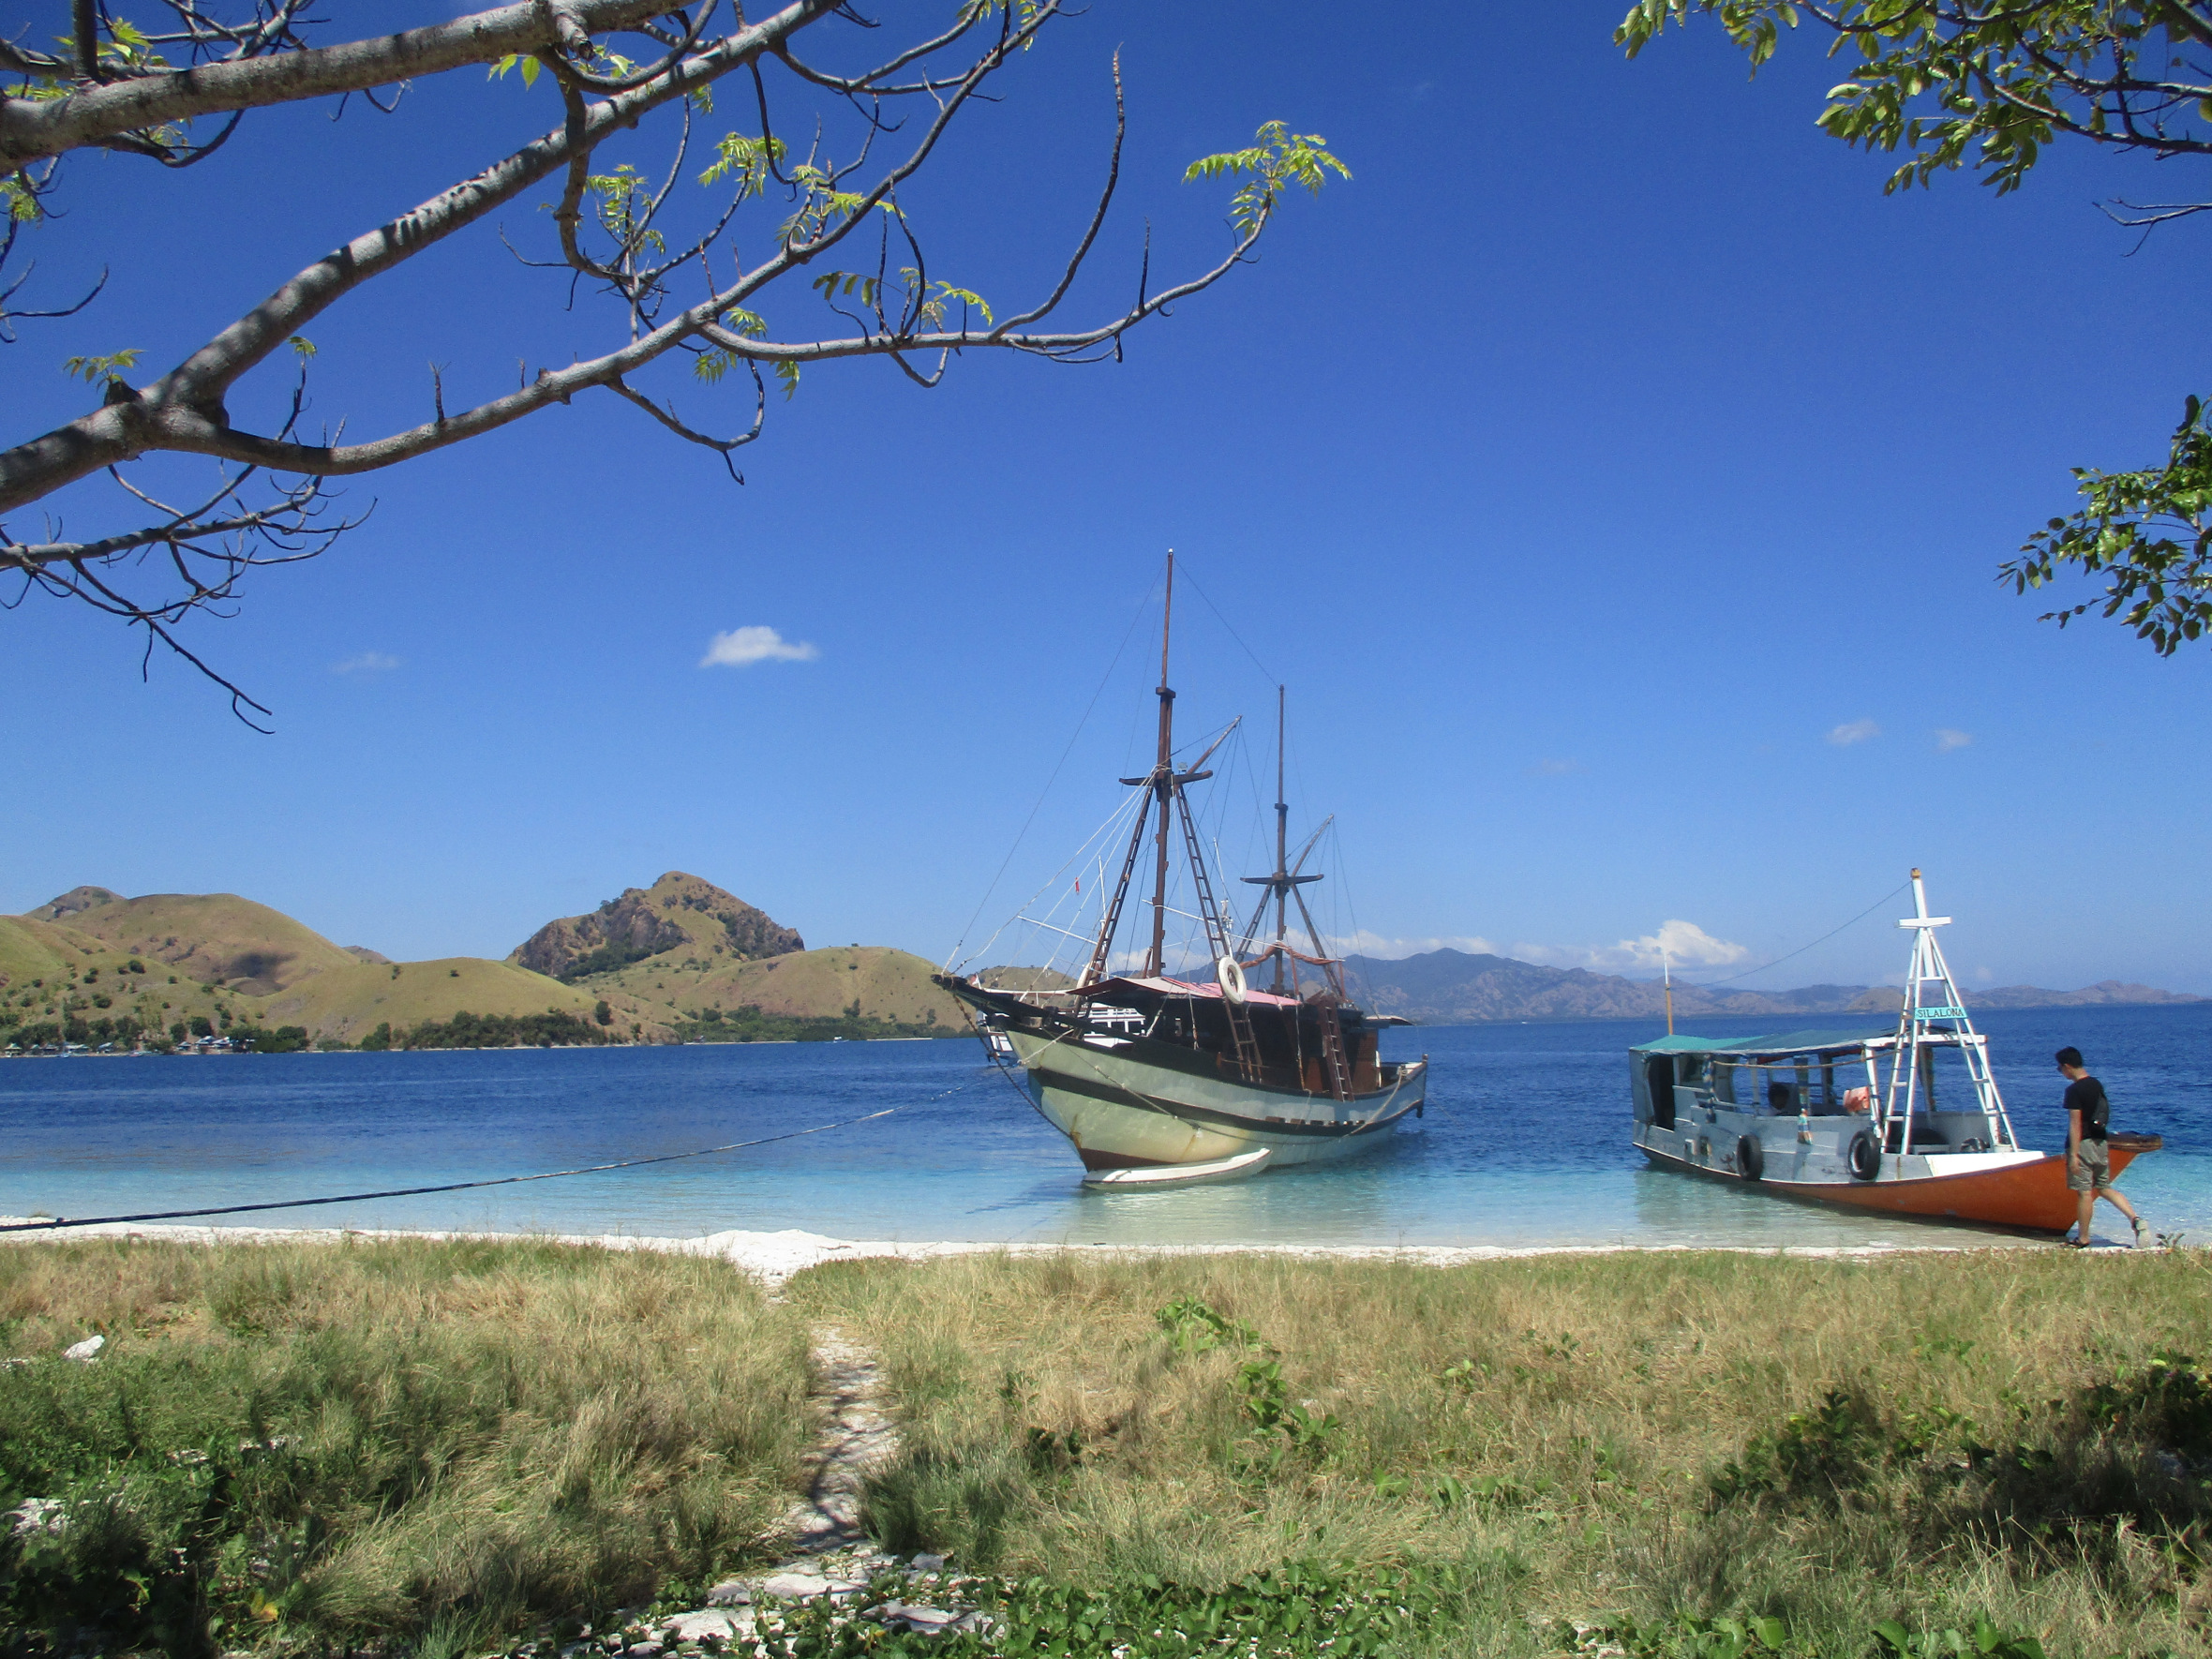 boats in Komodo Islands